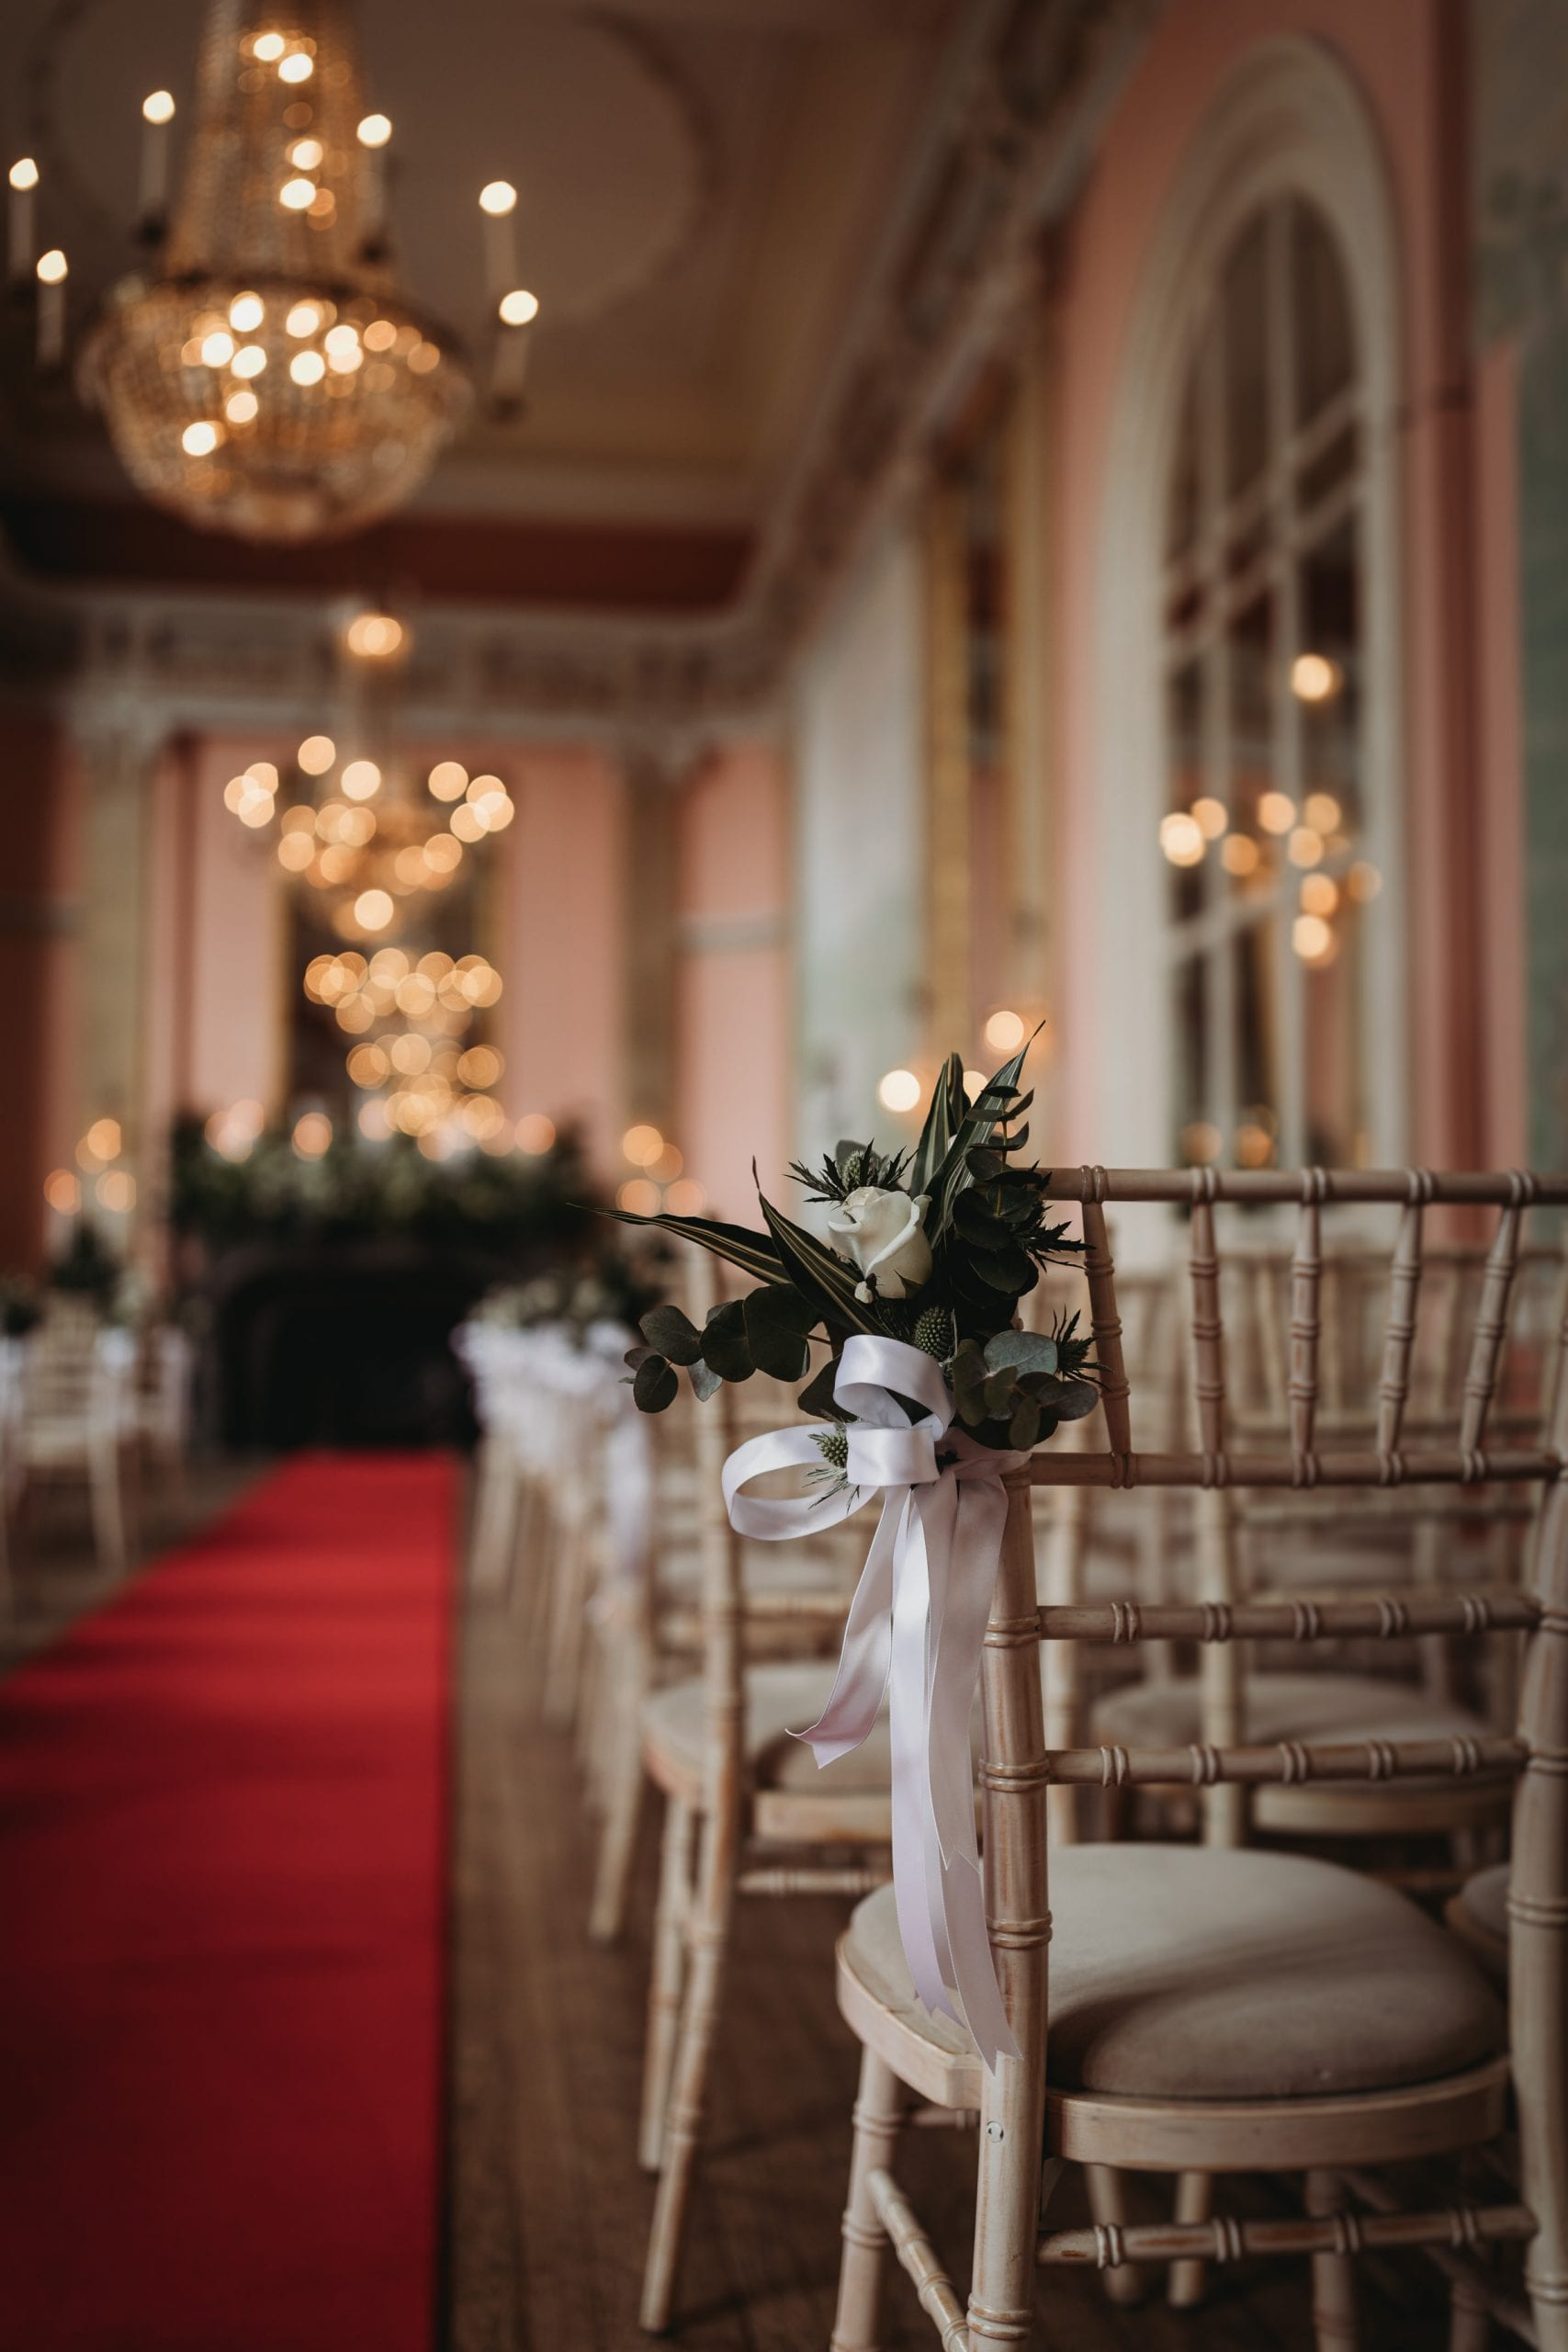 Ceremony room details